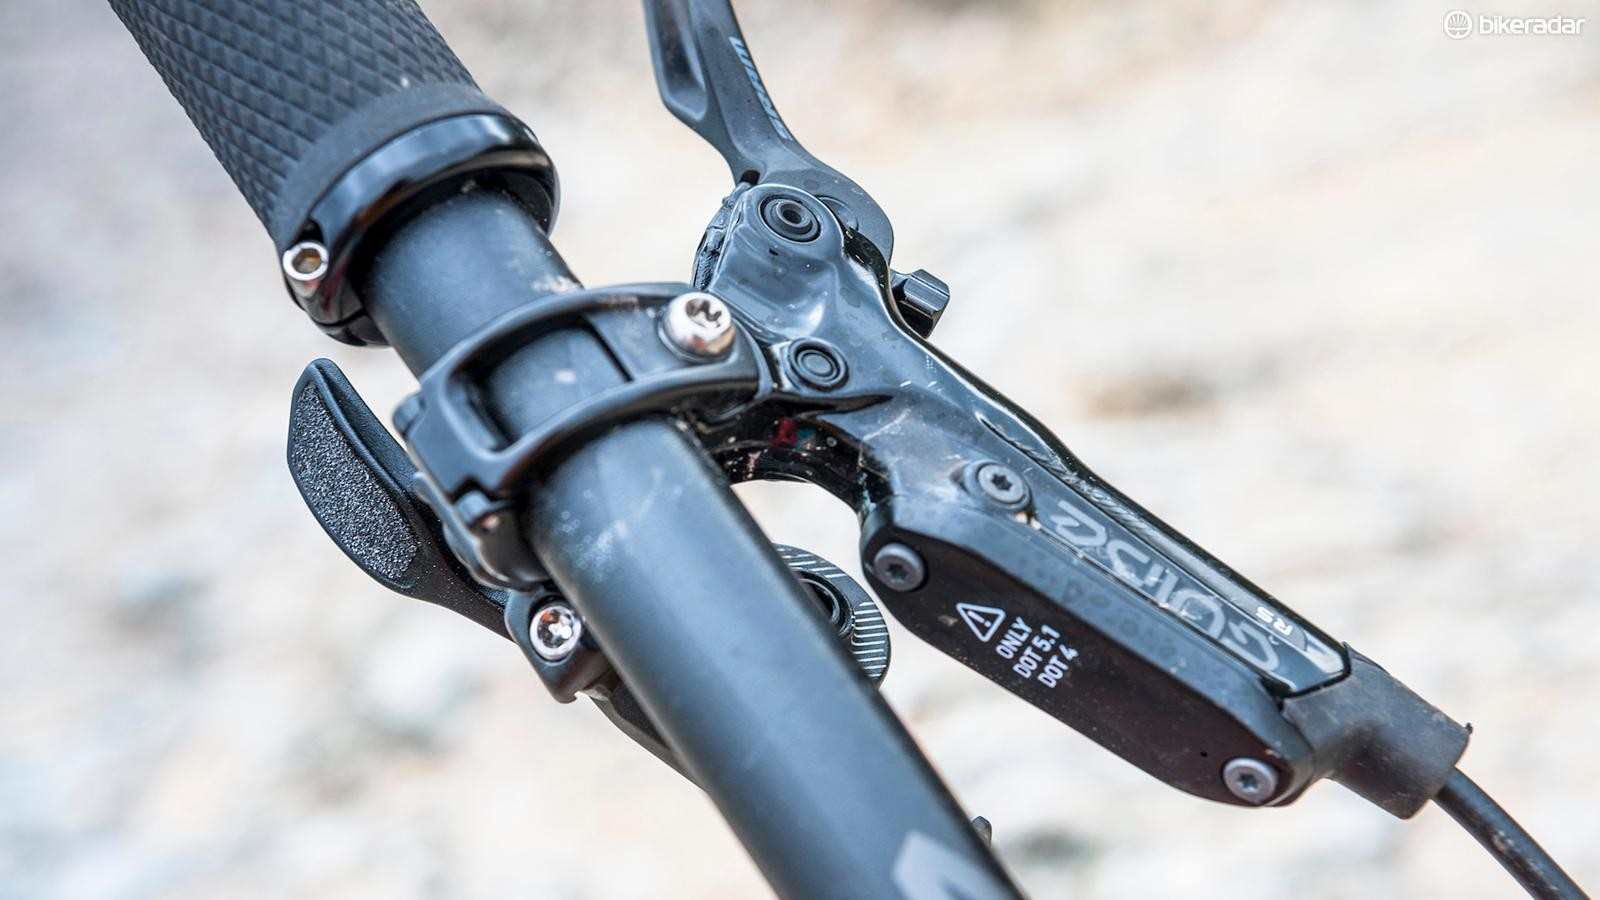 SRAM's Guide brake family is by far the most commonly seen on trail bikes this year